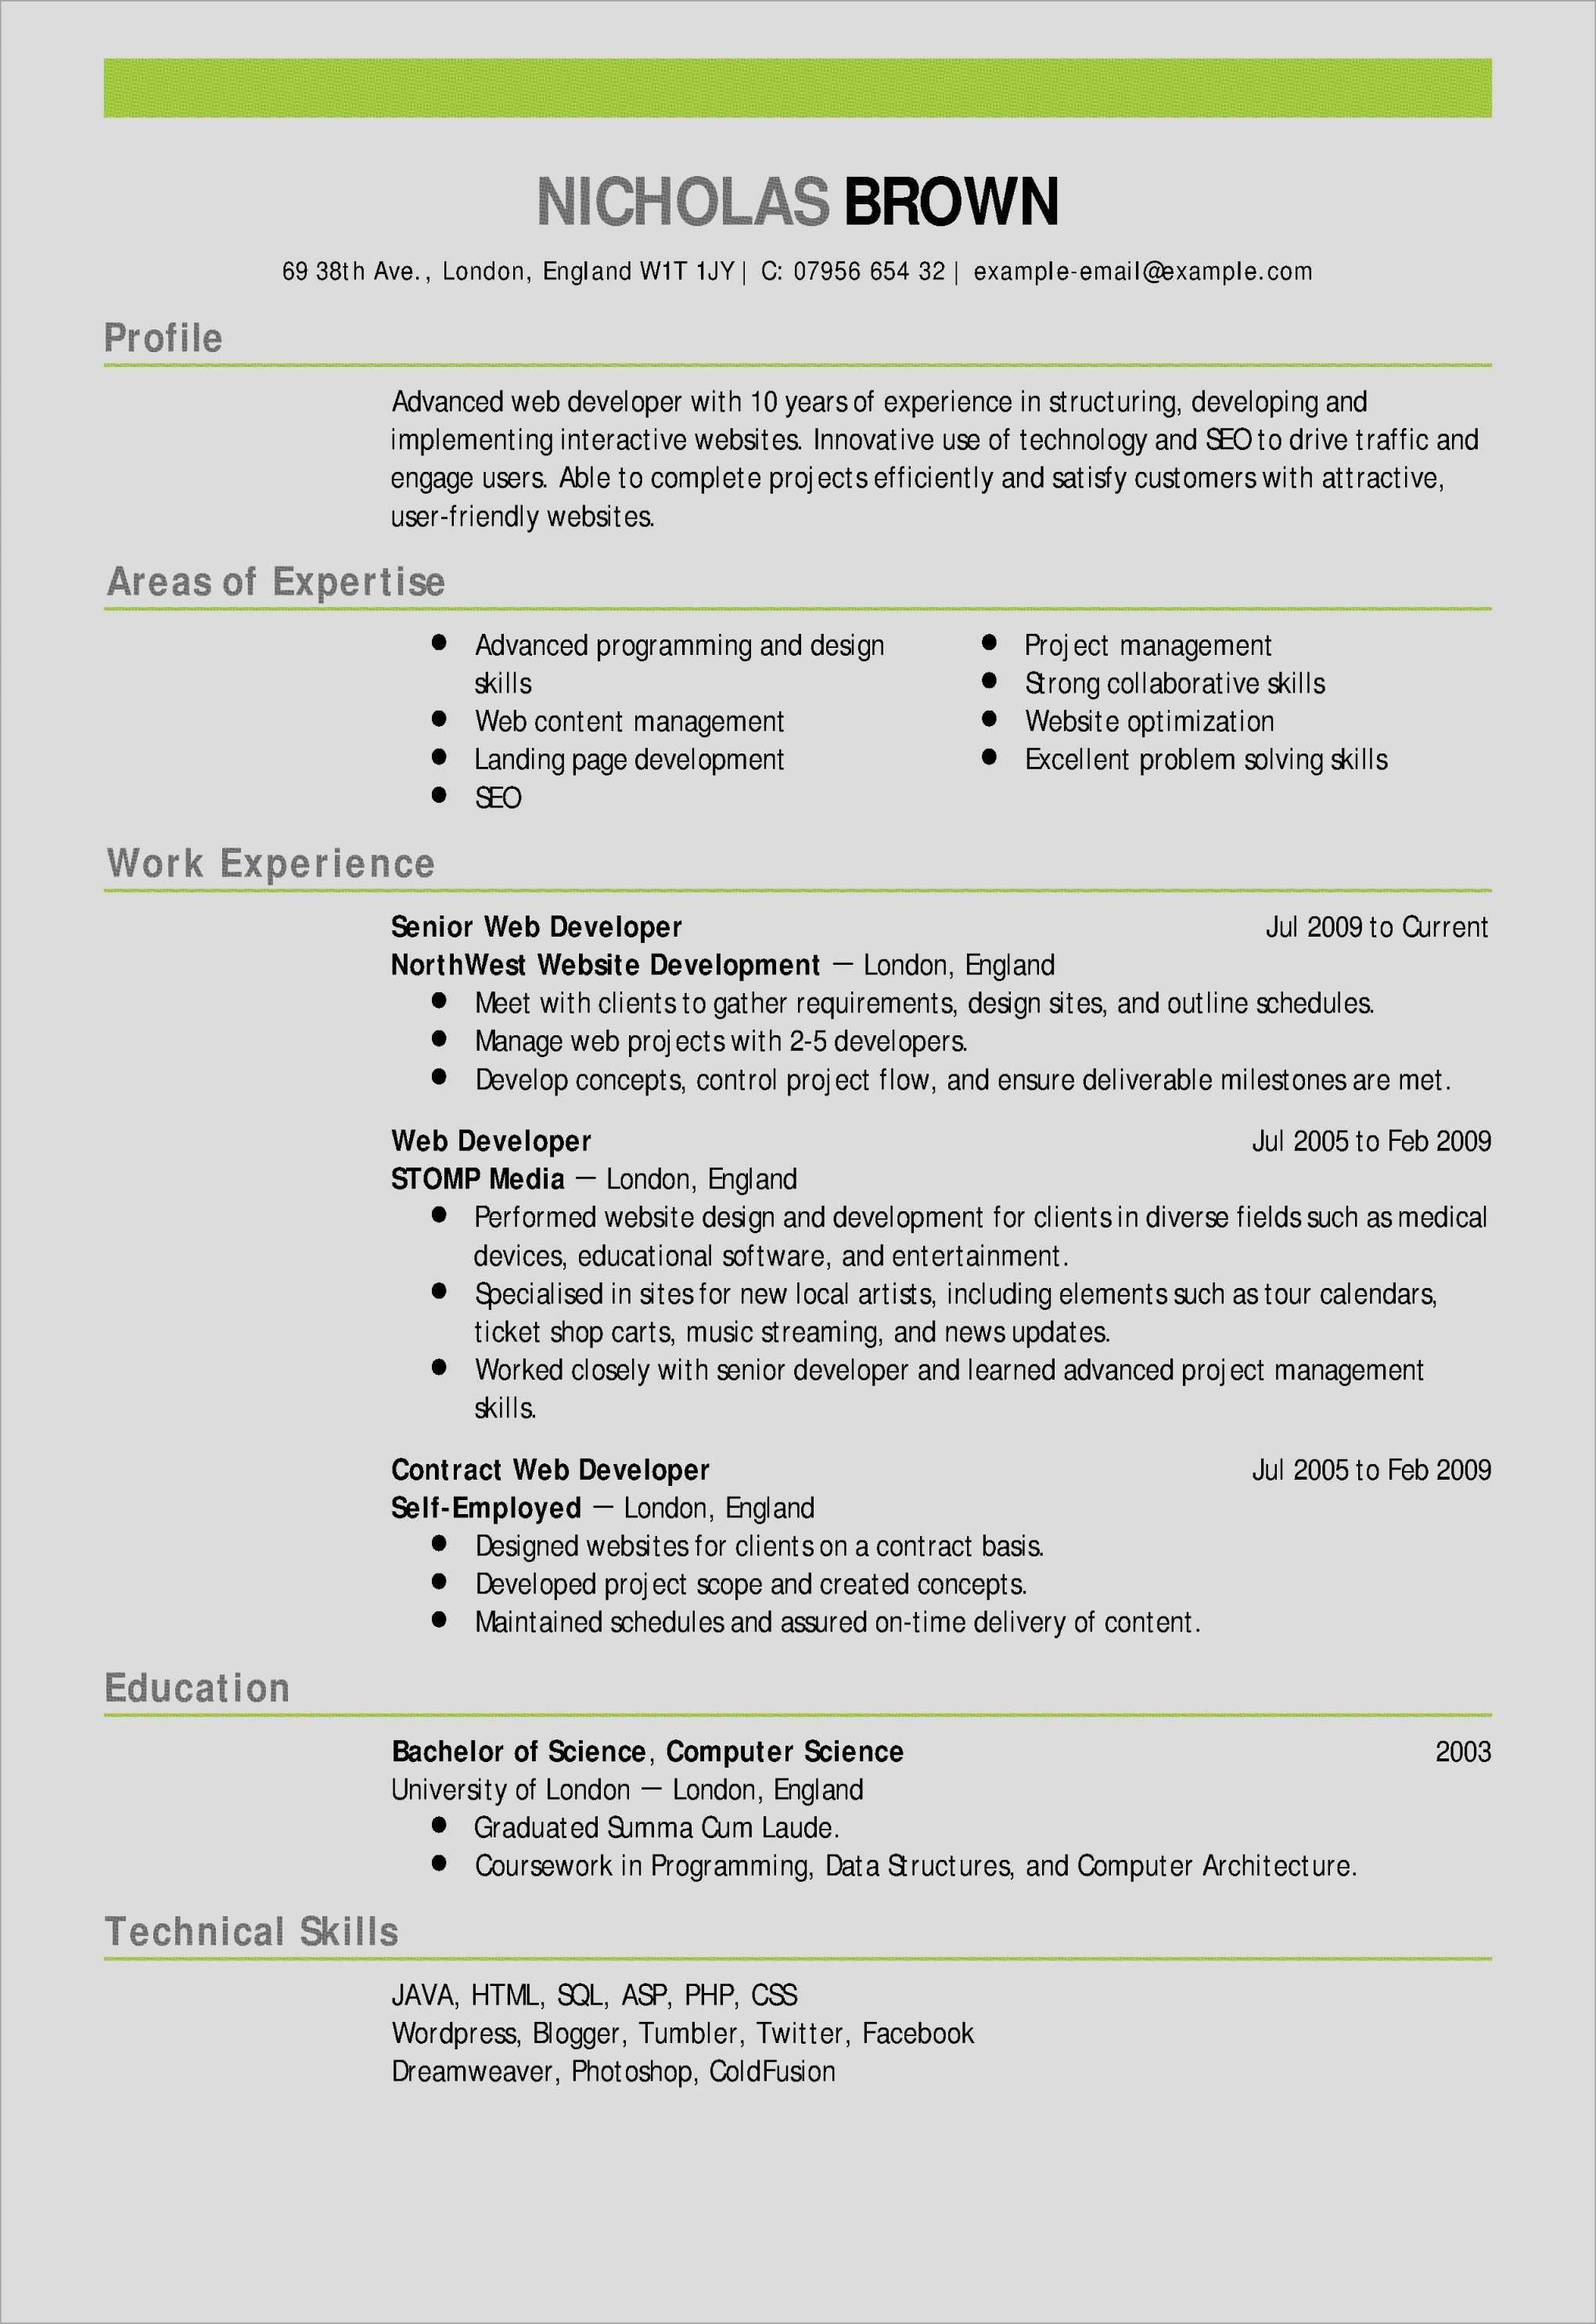 Creative Resume Templates For Microsoft Word Fresh 17 Templates & Samples Resume Template Microsoft Word Free